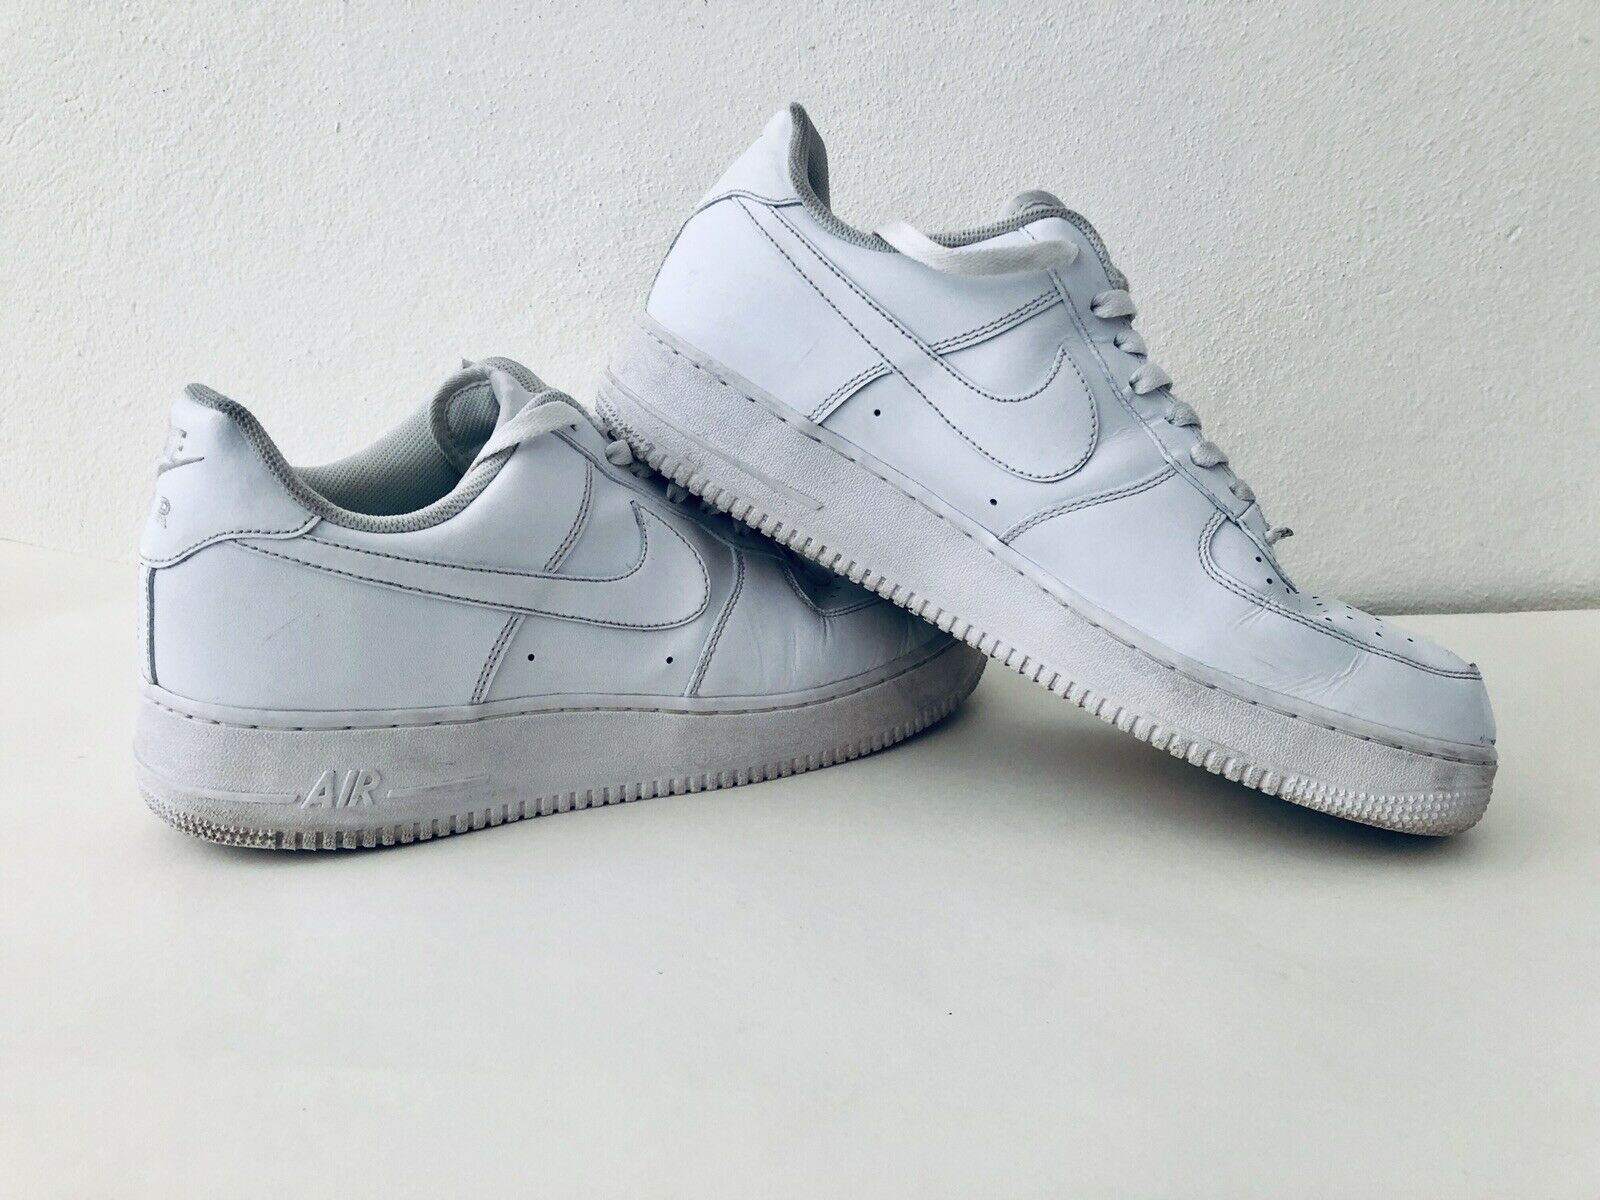 Nike Air Force 1 - Lows, White Leather, Very Good Condition. Men's Size 13